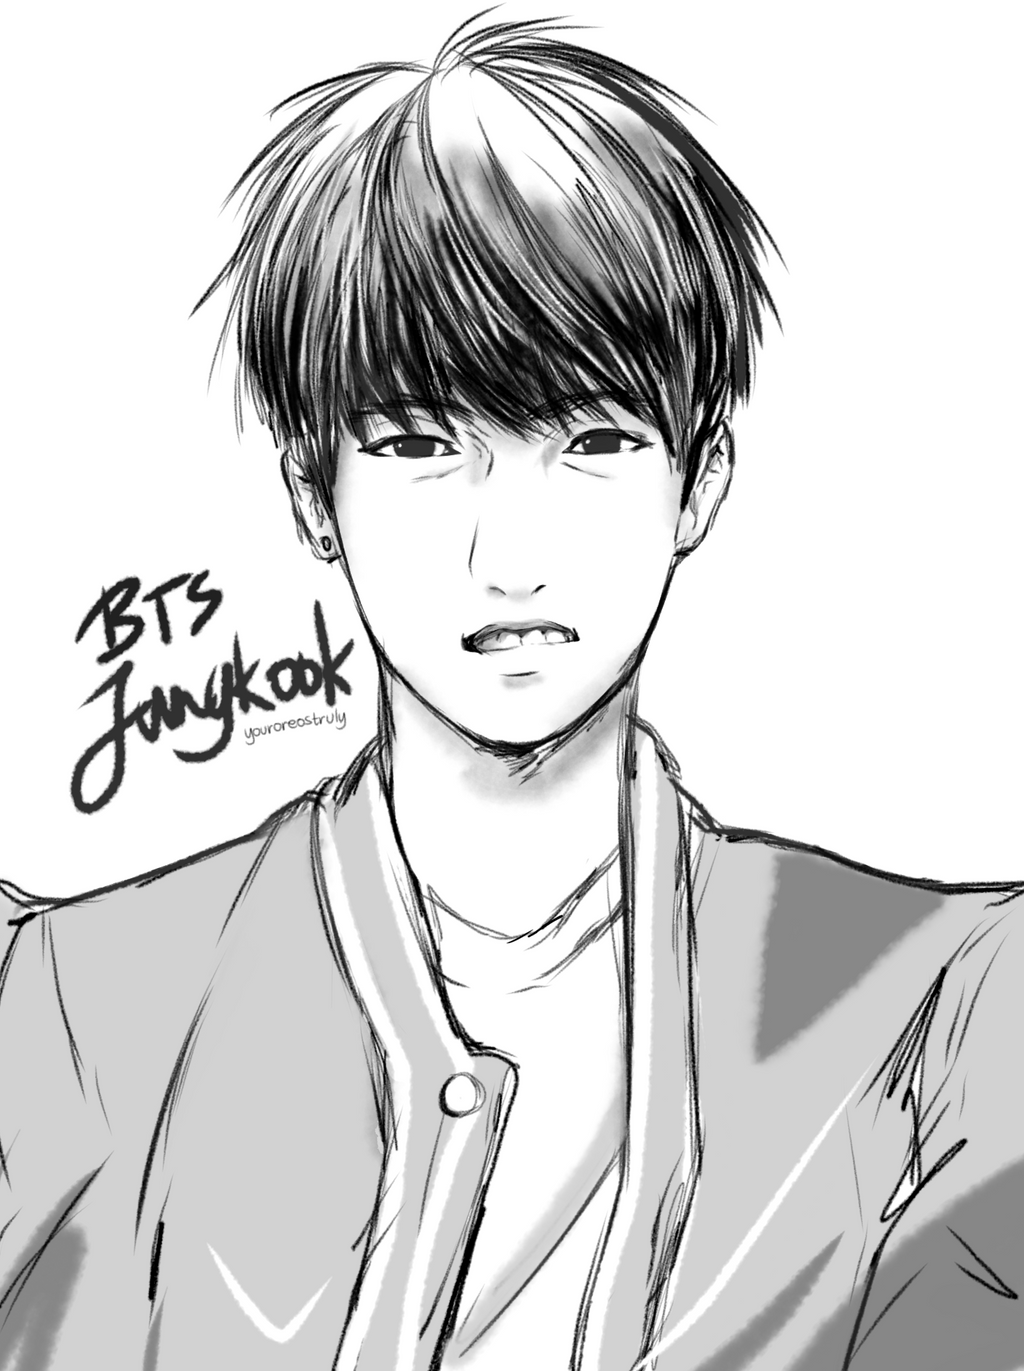 BTS [ Sketch. ] - Jungkook. By Orehyeonggie On DeviantArt